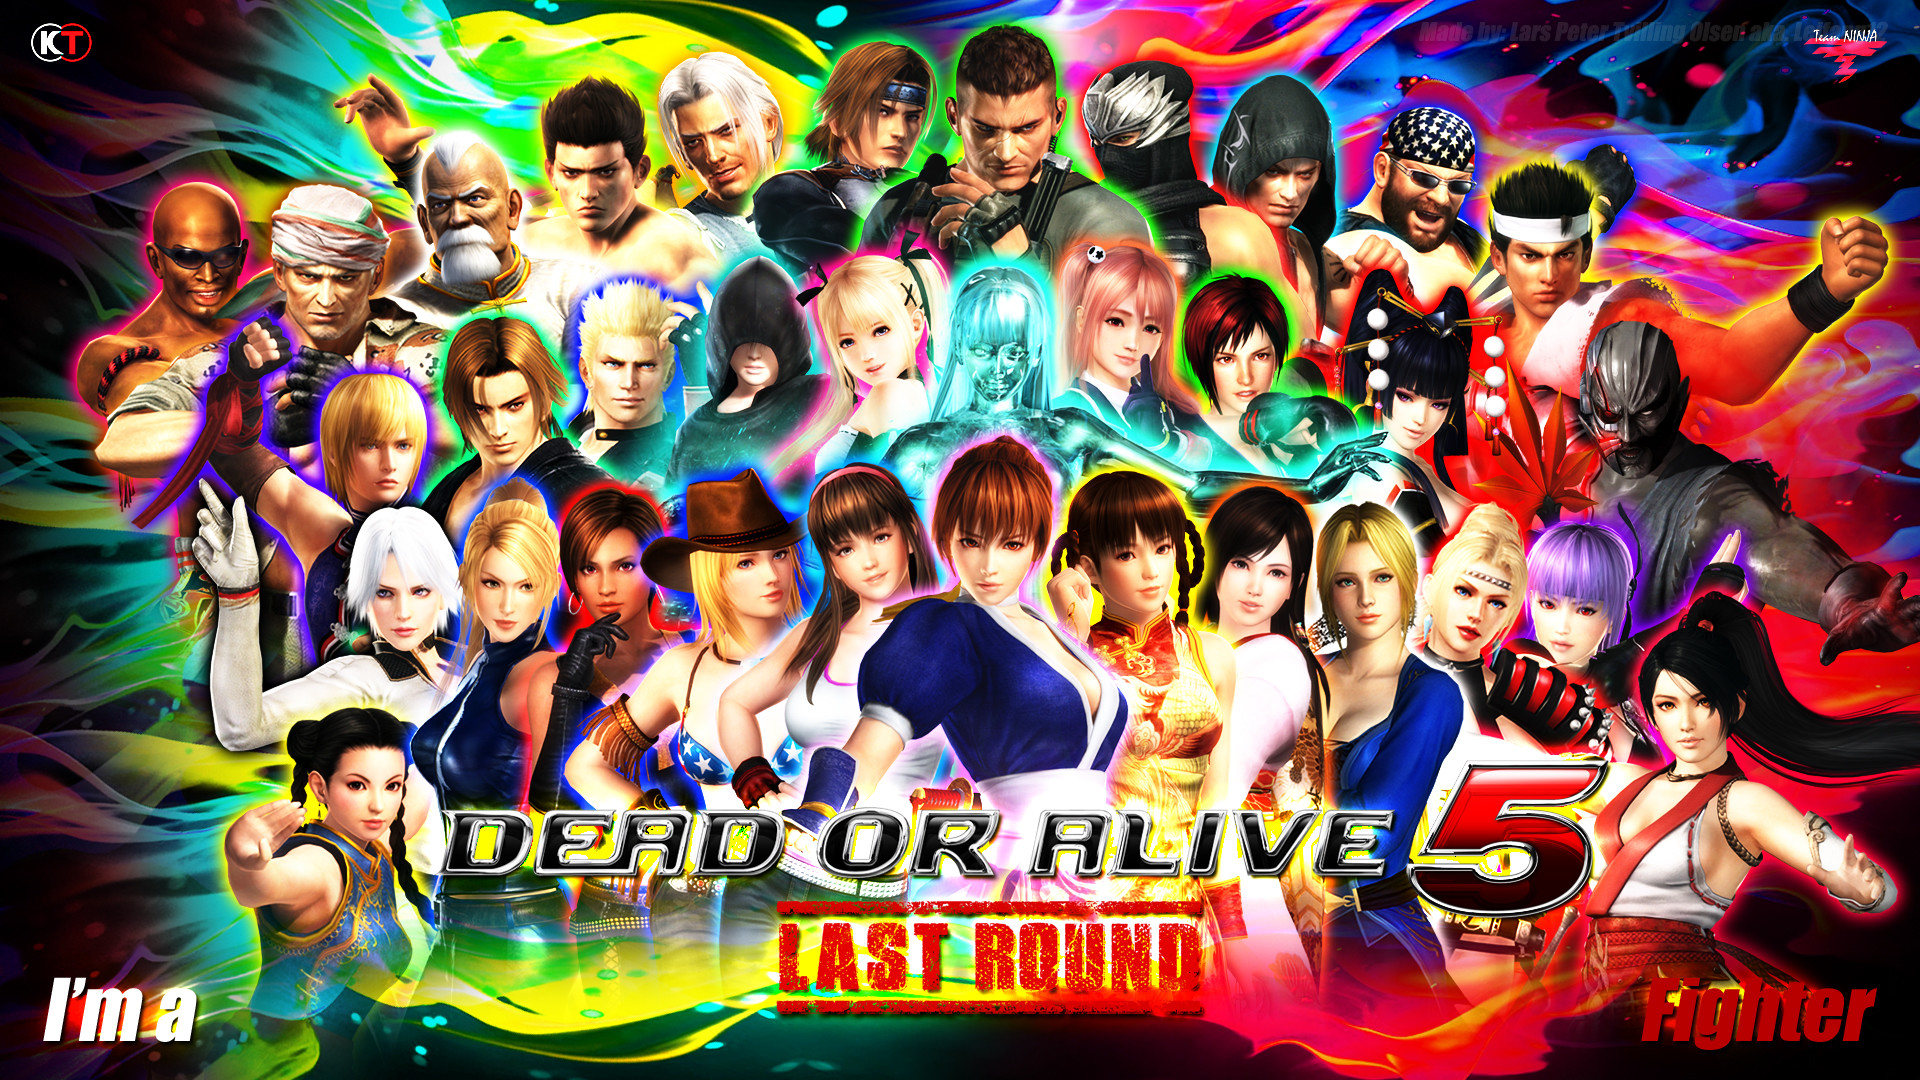 … DEAD OR ALIVE 5 – LAST ROUND – CHARACTER WALLPAPER by Leifang12